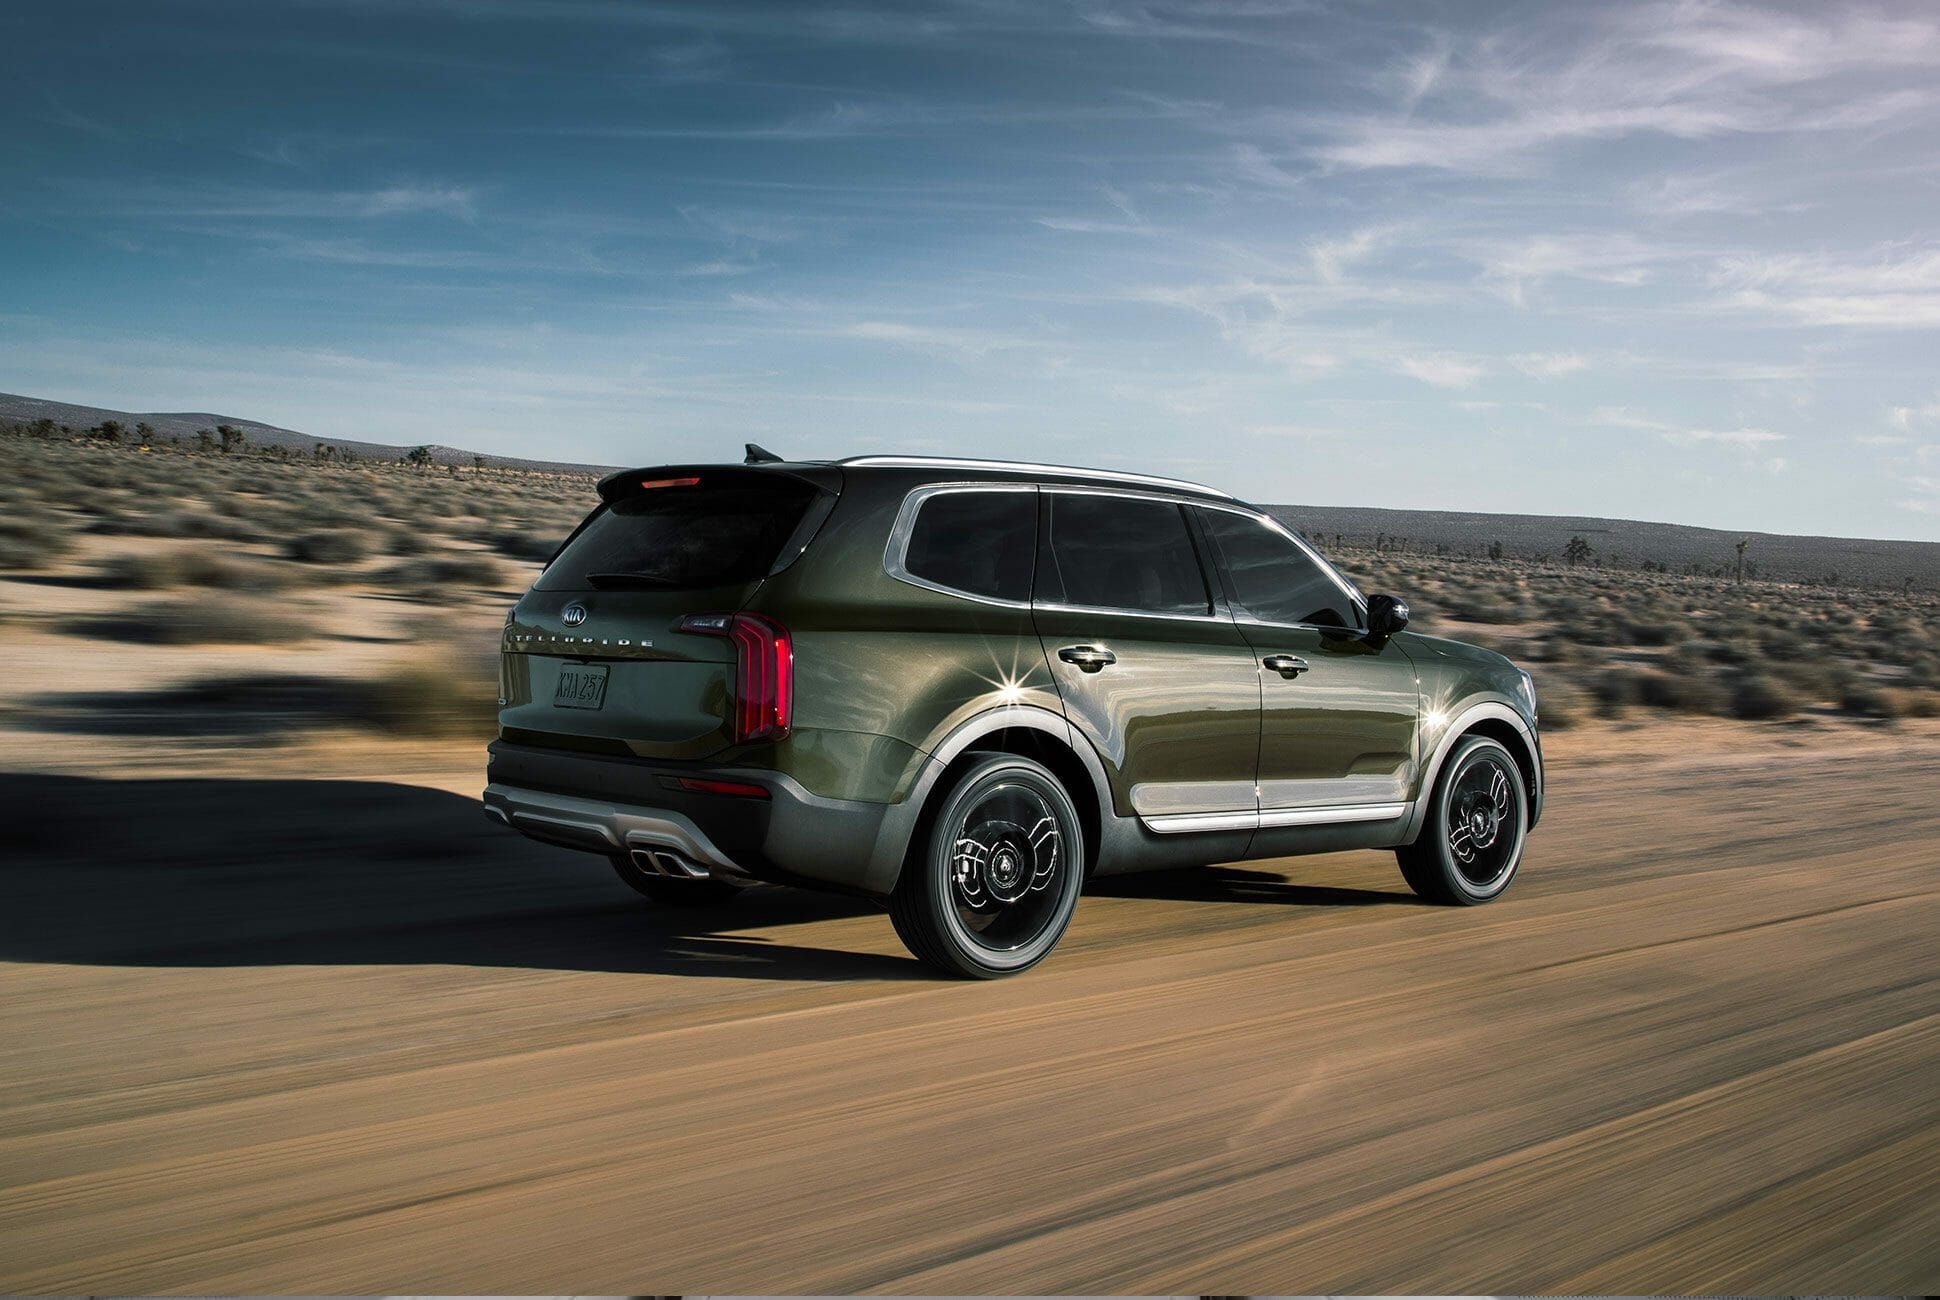 2020 Kia Telluride Review A Three Row Family Suv To Pamper